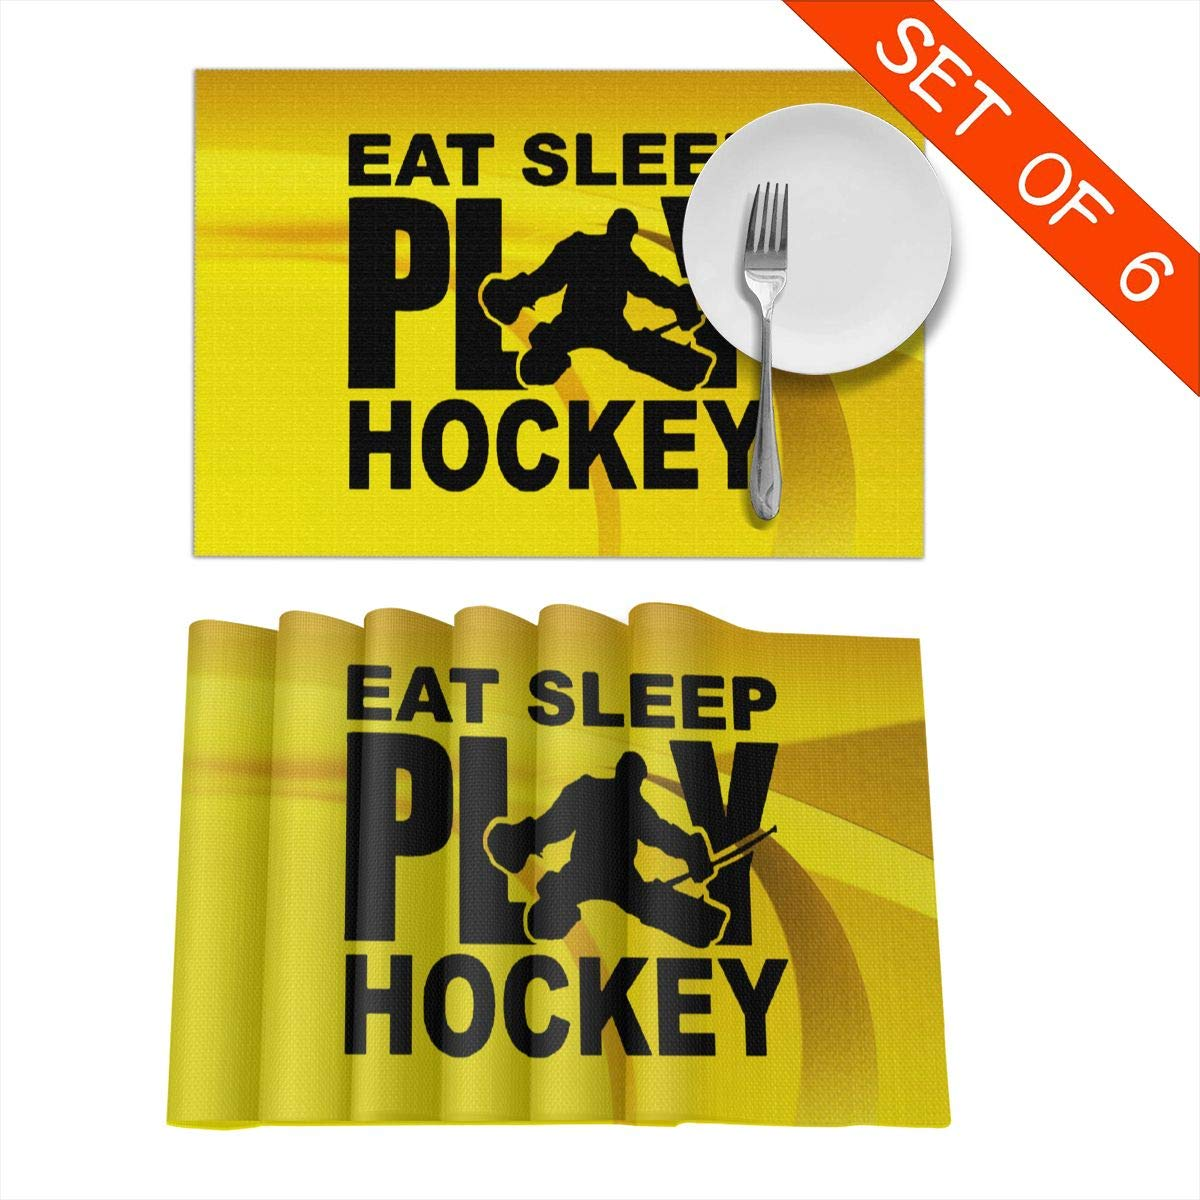 2 Pack Luggage Tags Eat Sleep HOCKEY Repeat Cruise Luggage Tag For Suitcase Bag Accessories